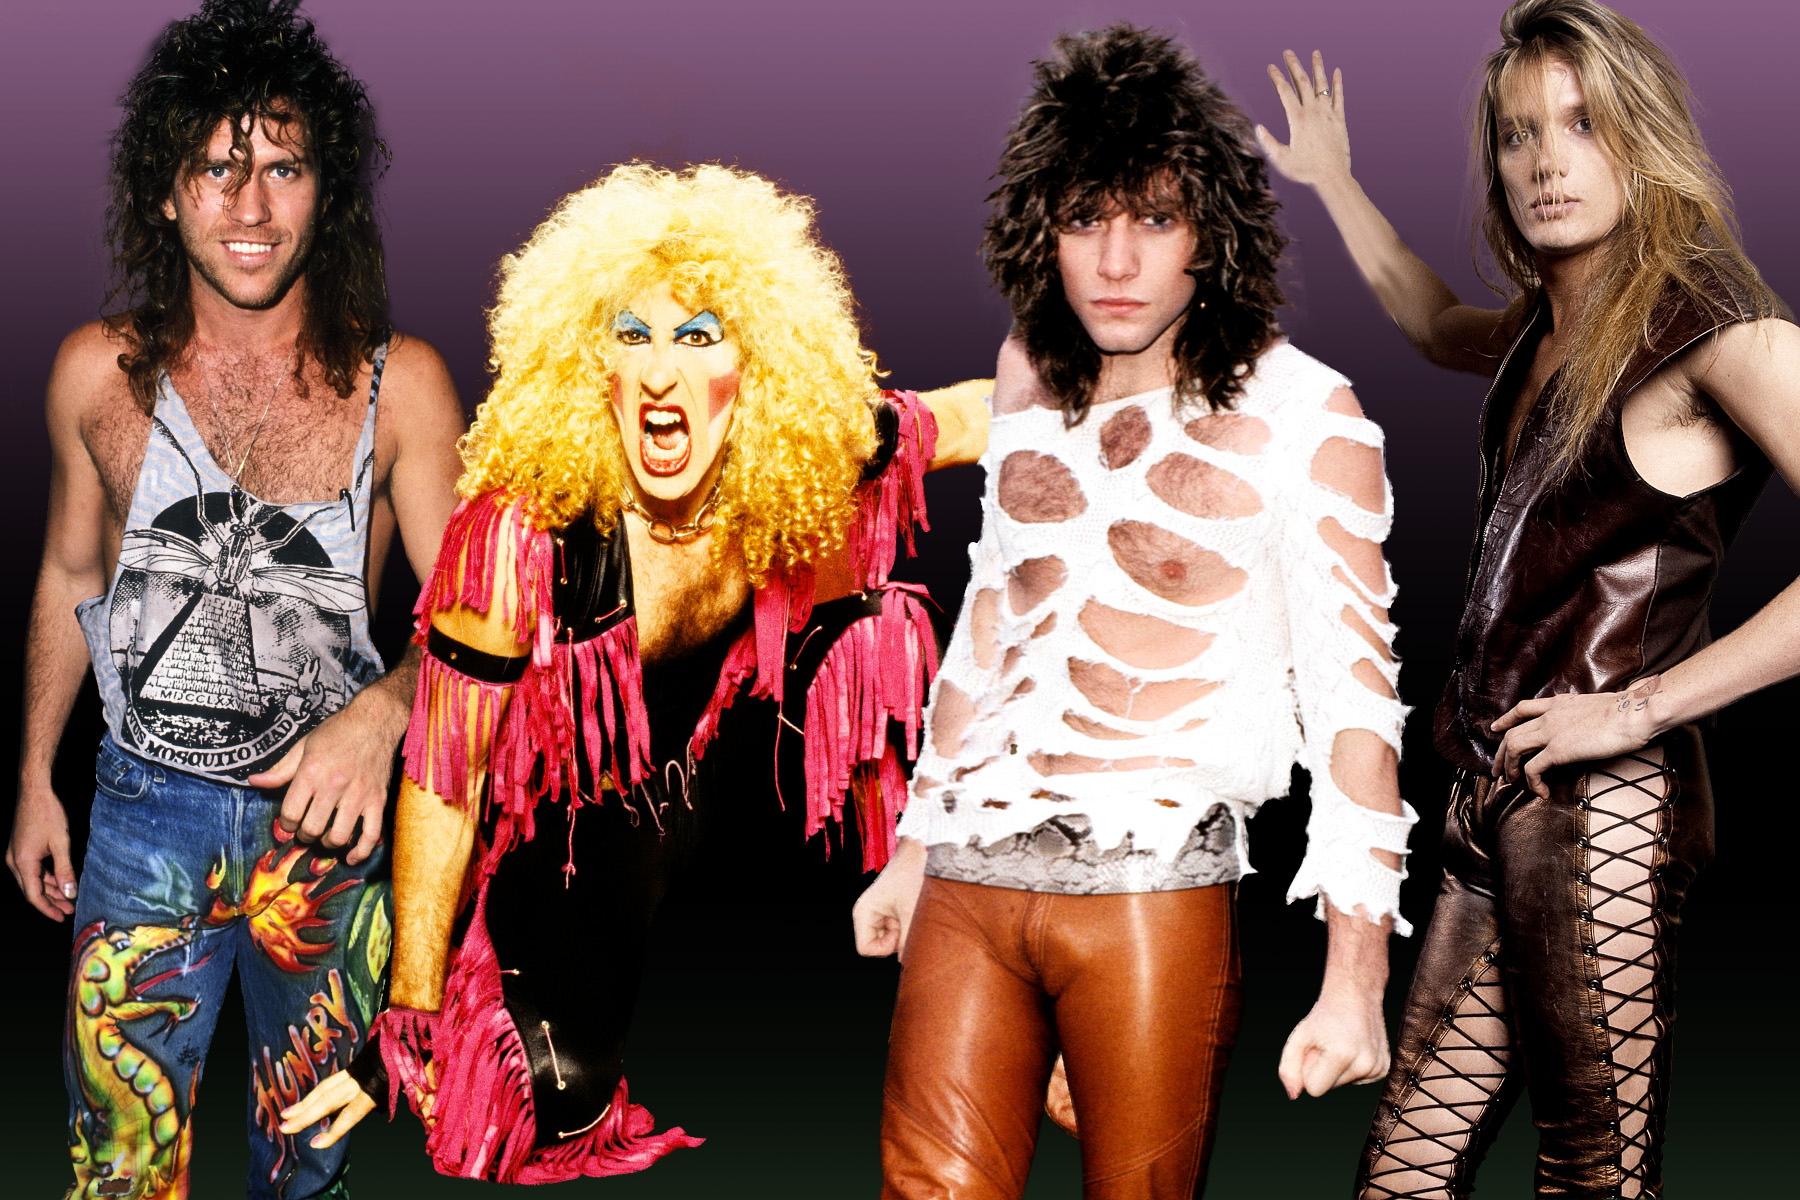 The fug girls look back at 80s hair band style vulture for Acid song 80s